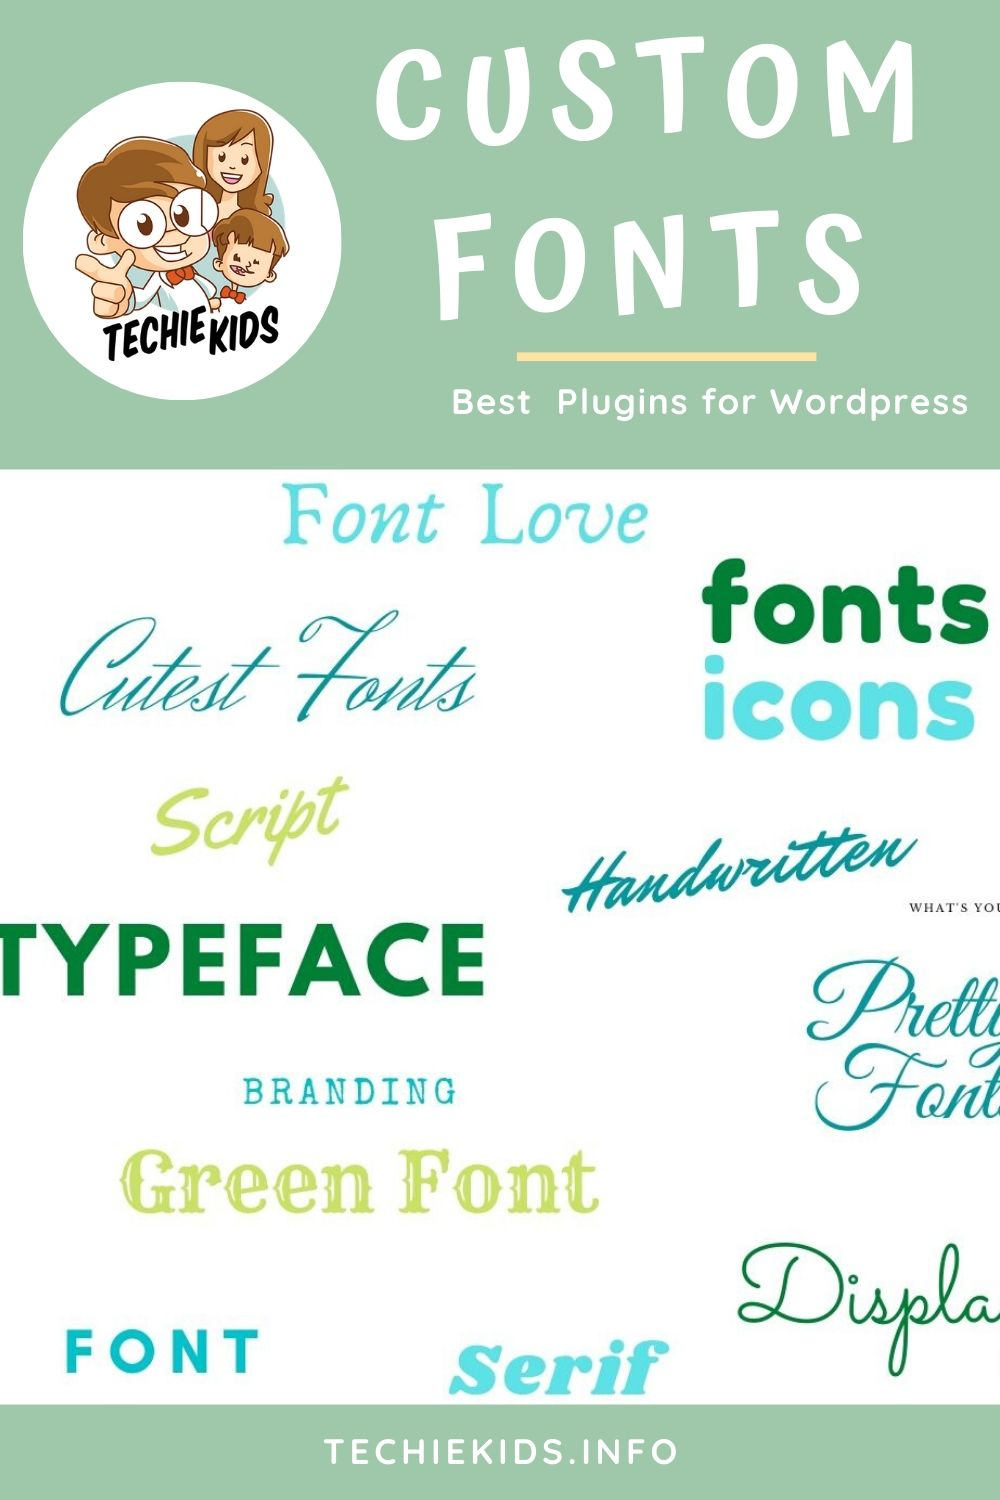 The Top 5 WordPress Plugins for Adding Custom Fonts